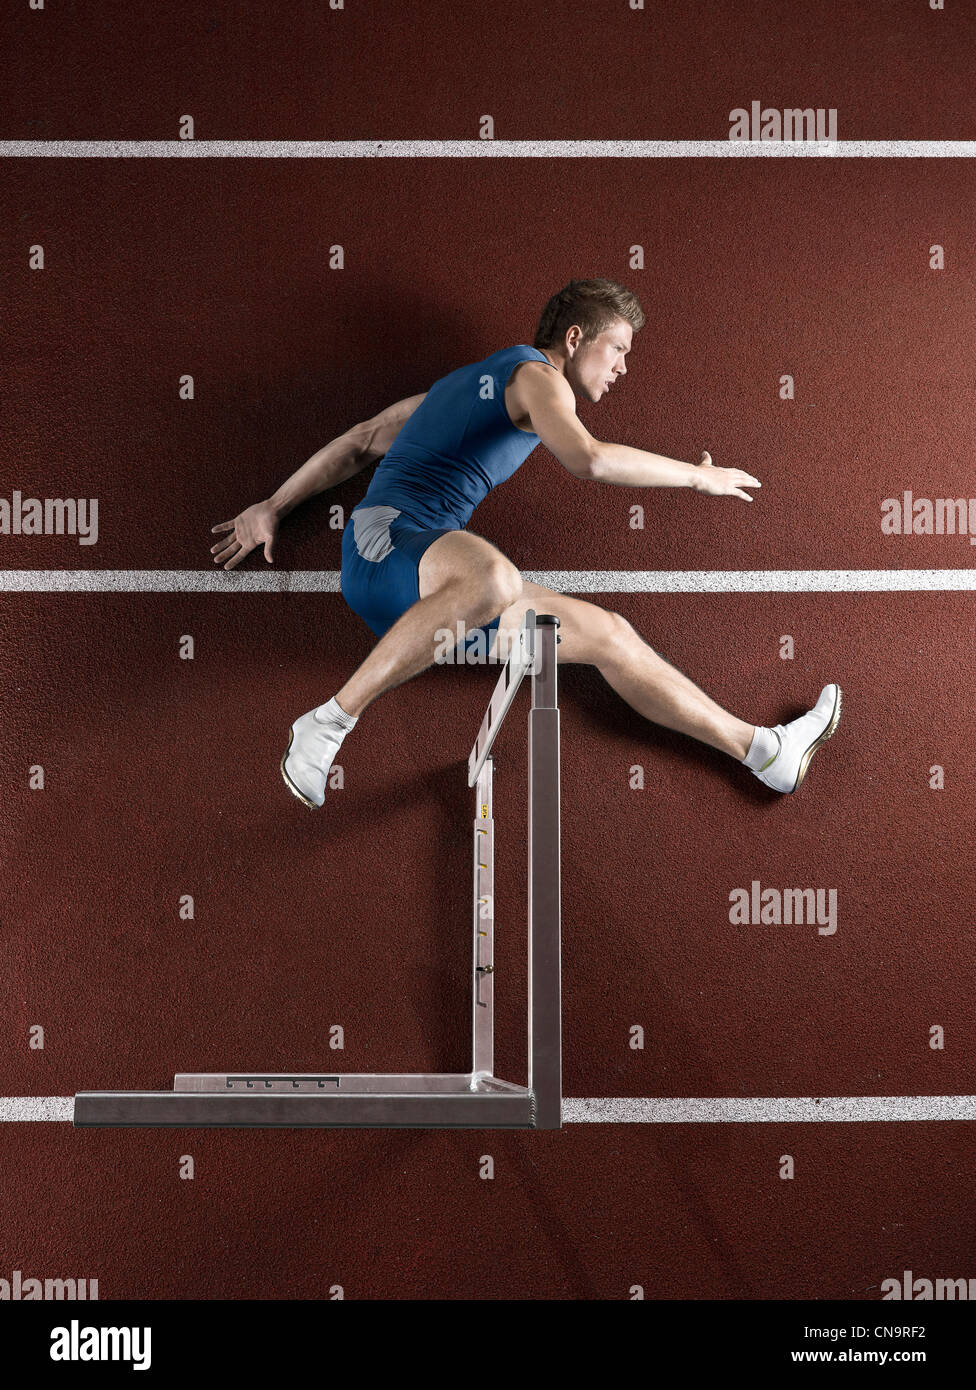 Runner laying with hurdle on track - Stock Image